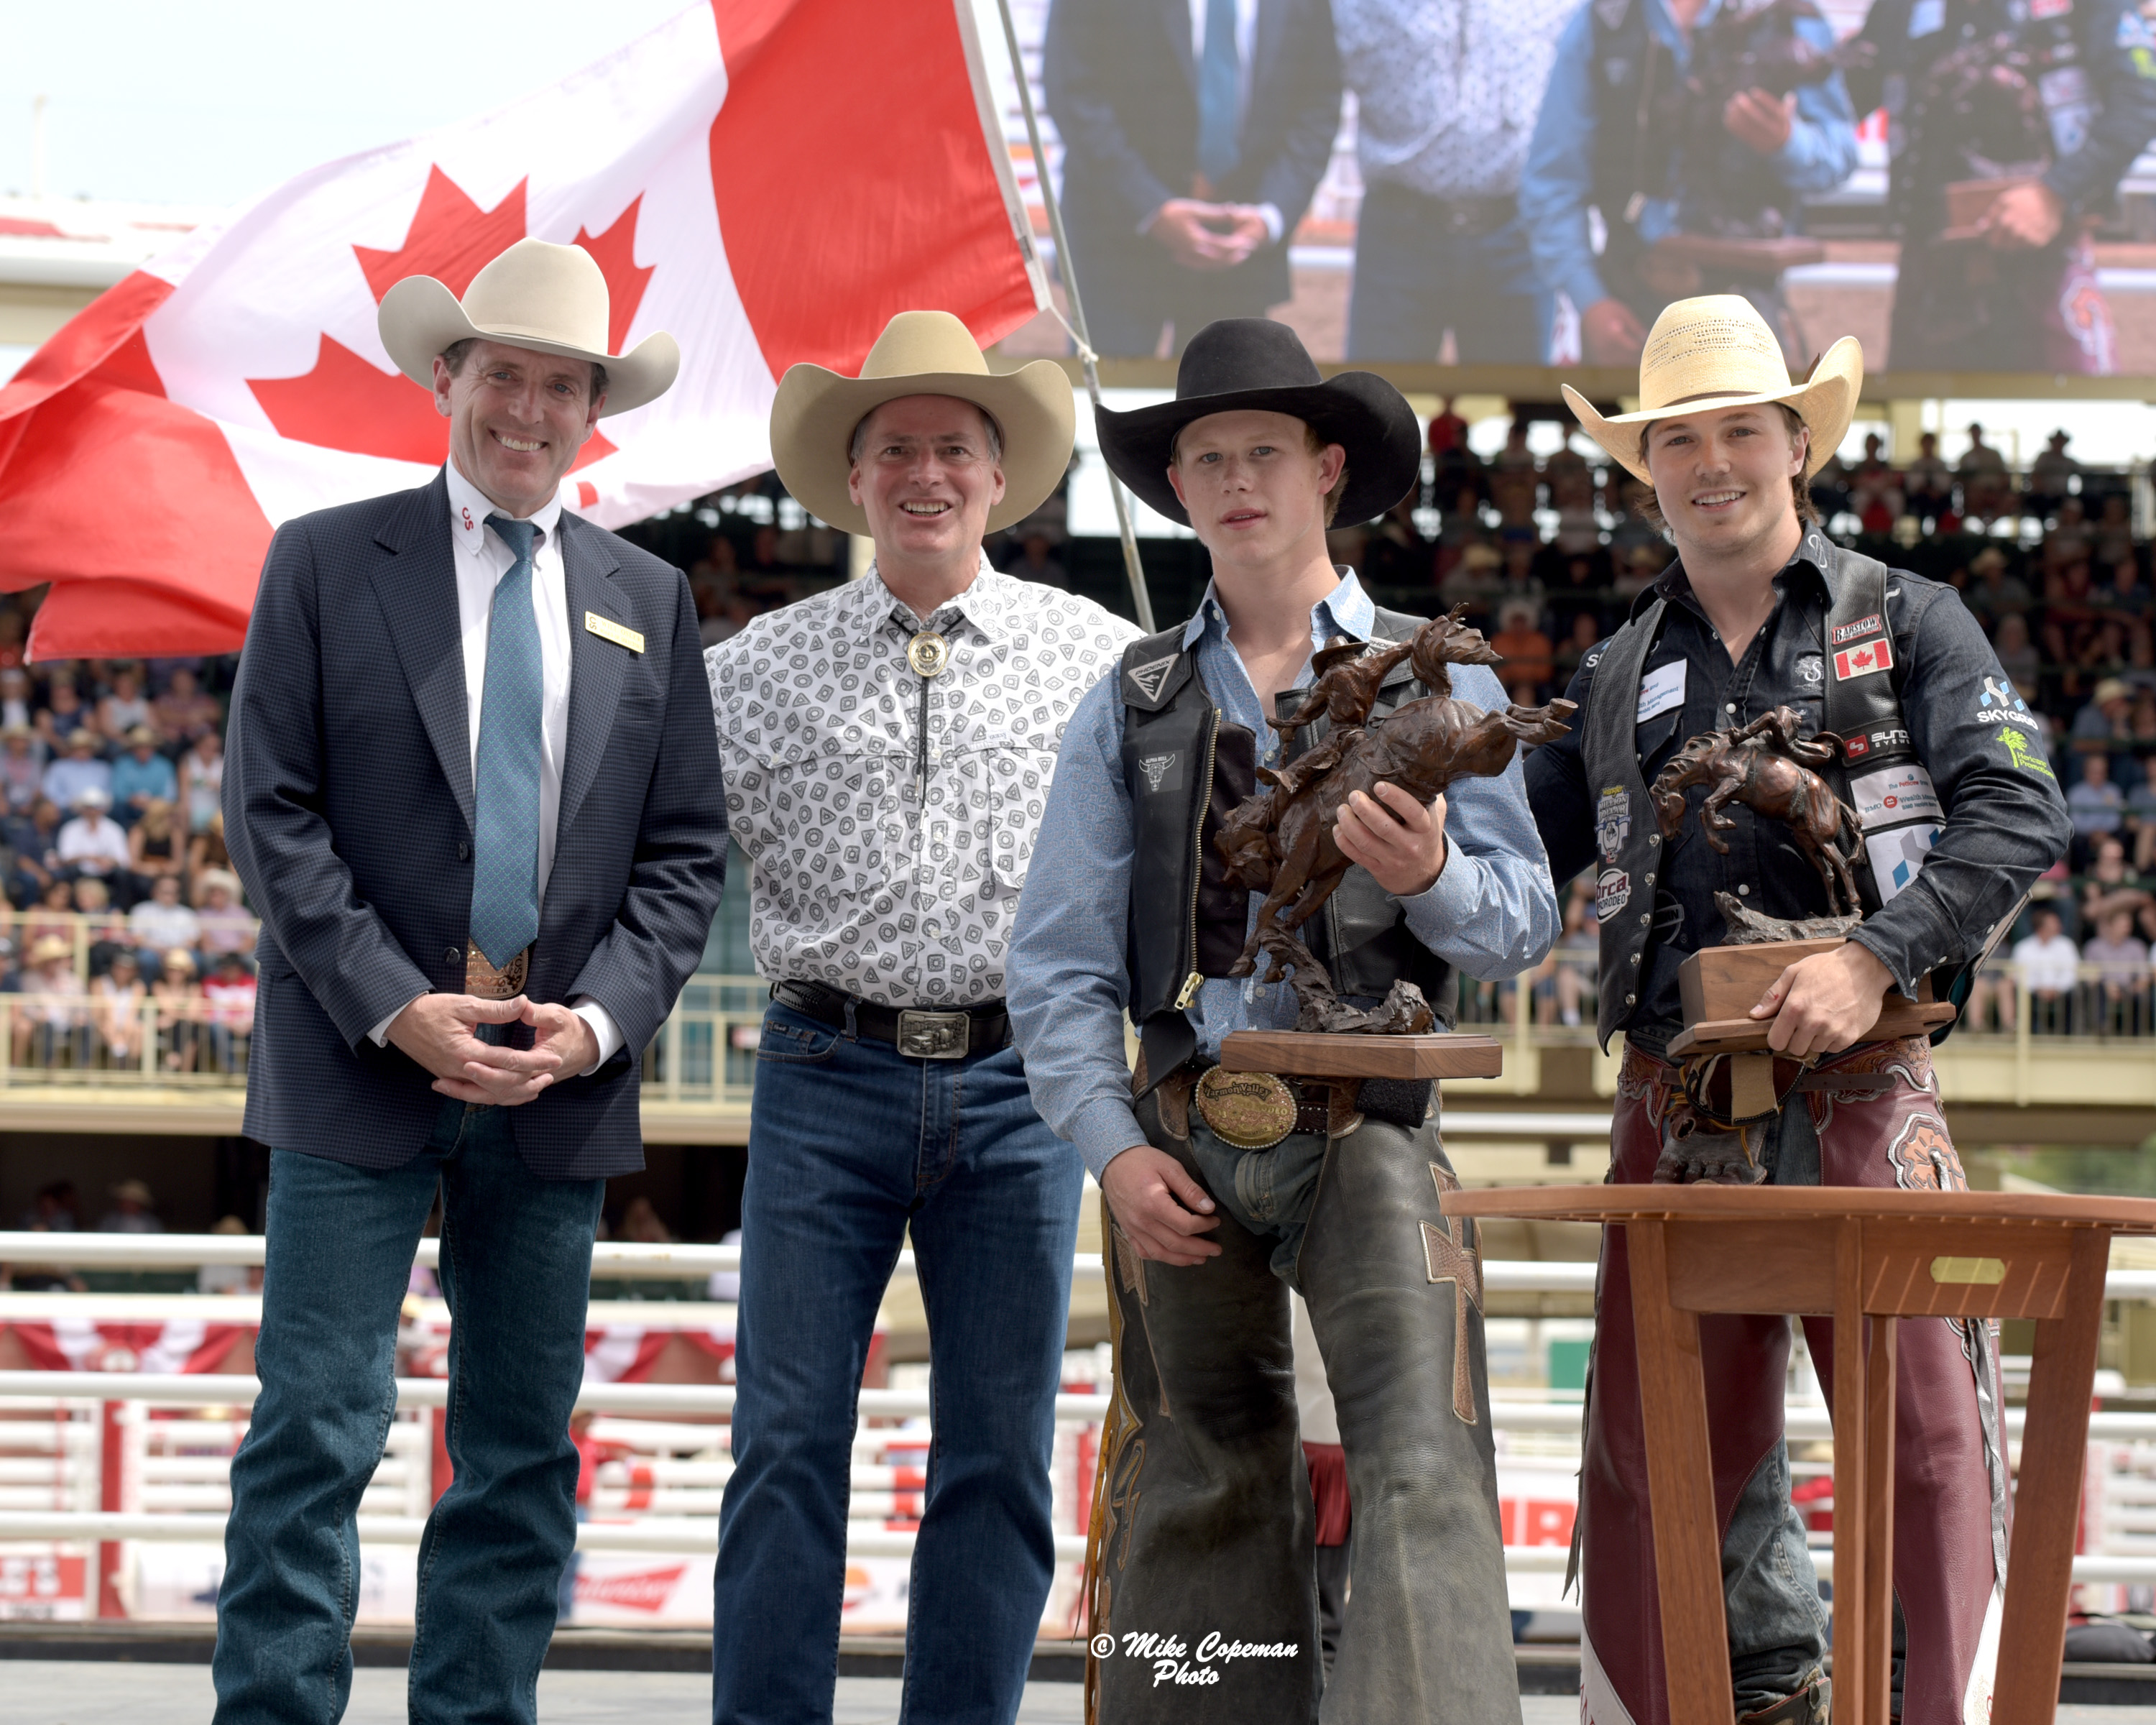 There S Just Something About The Calgary Stampede That